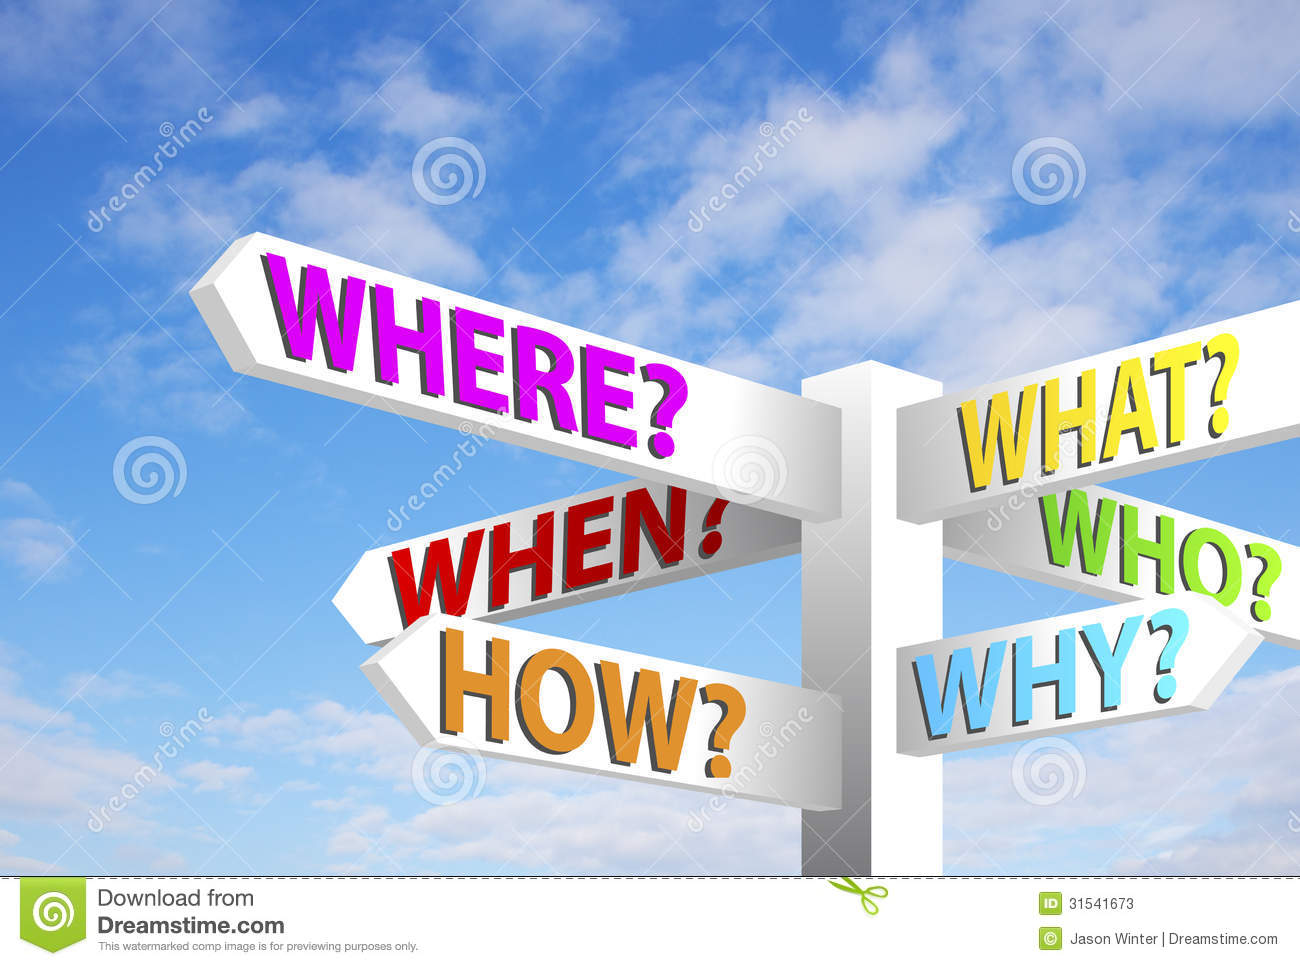 Question Signpost Stock Photos - Image: 31541673: http://www.dreamstime.com/stock-photos-question-signpost-sign-post-against-blue-sky-image31541673